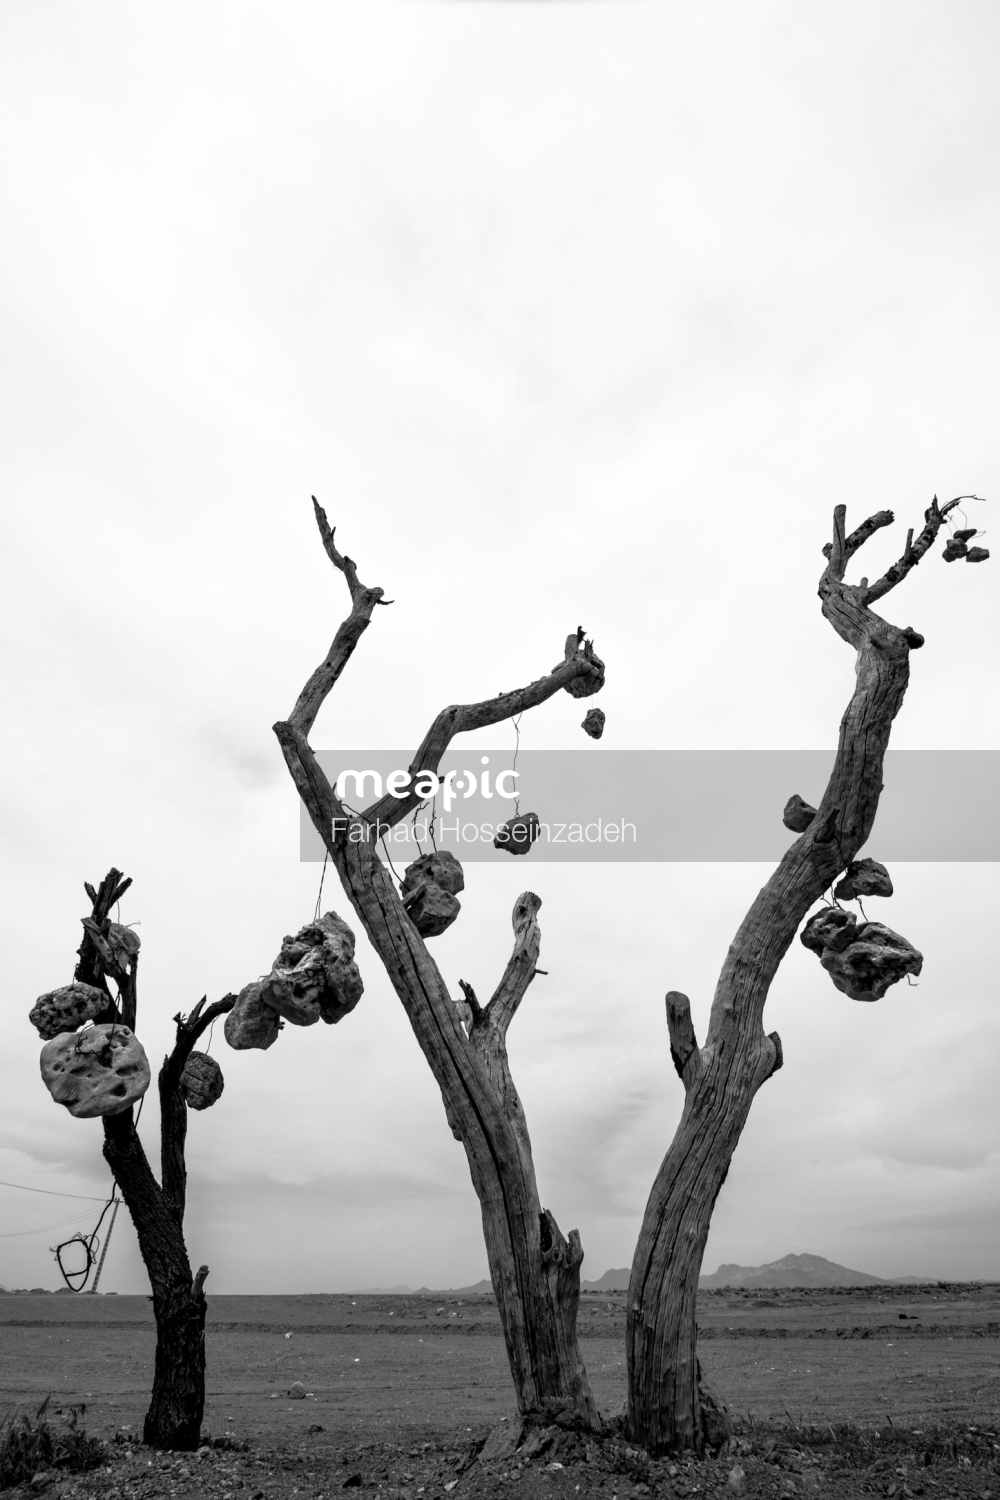 Group Of People Standing Next To A Tree Stock Photo · Meapic